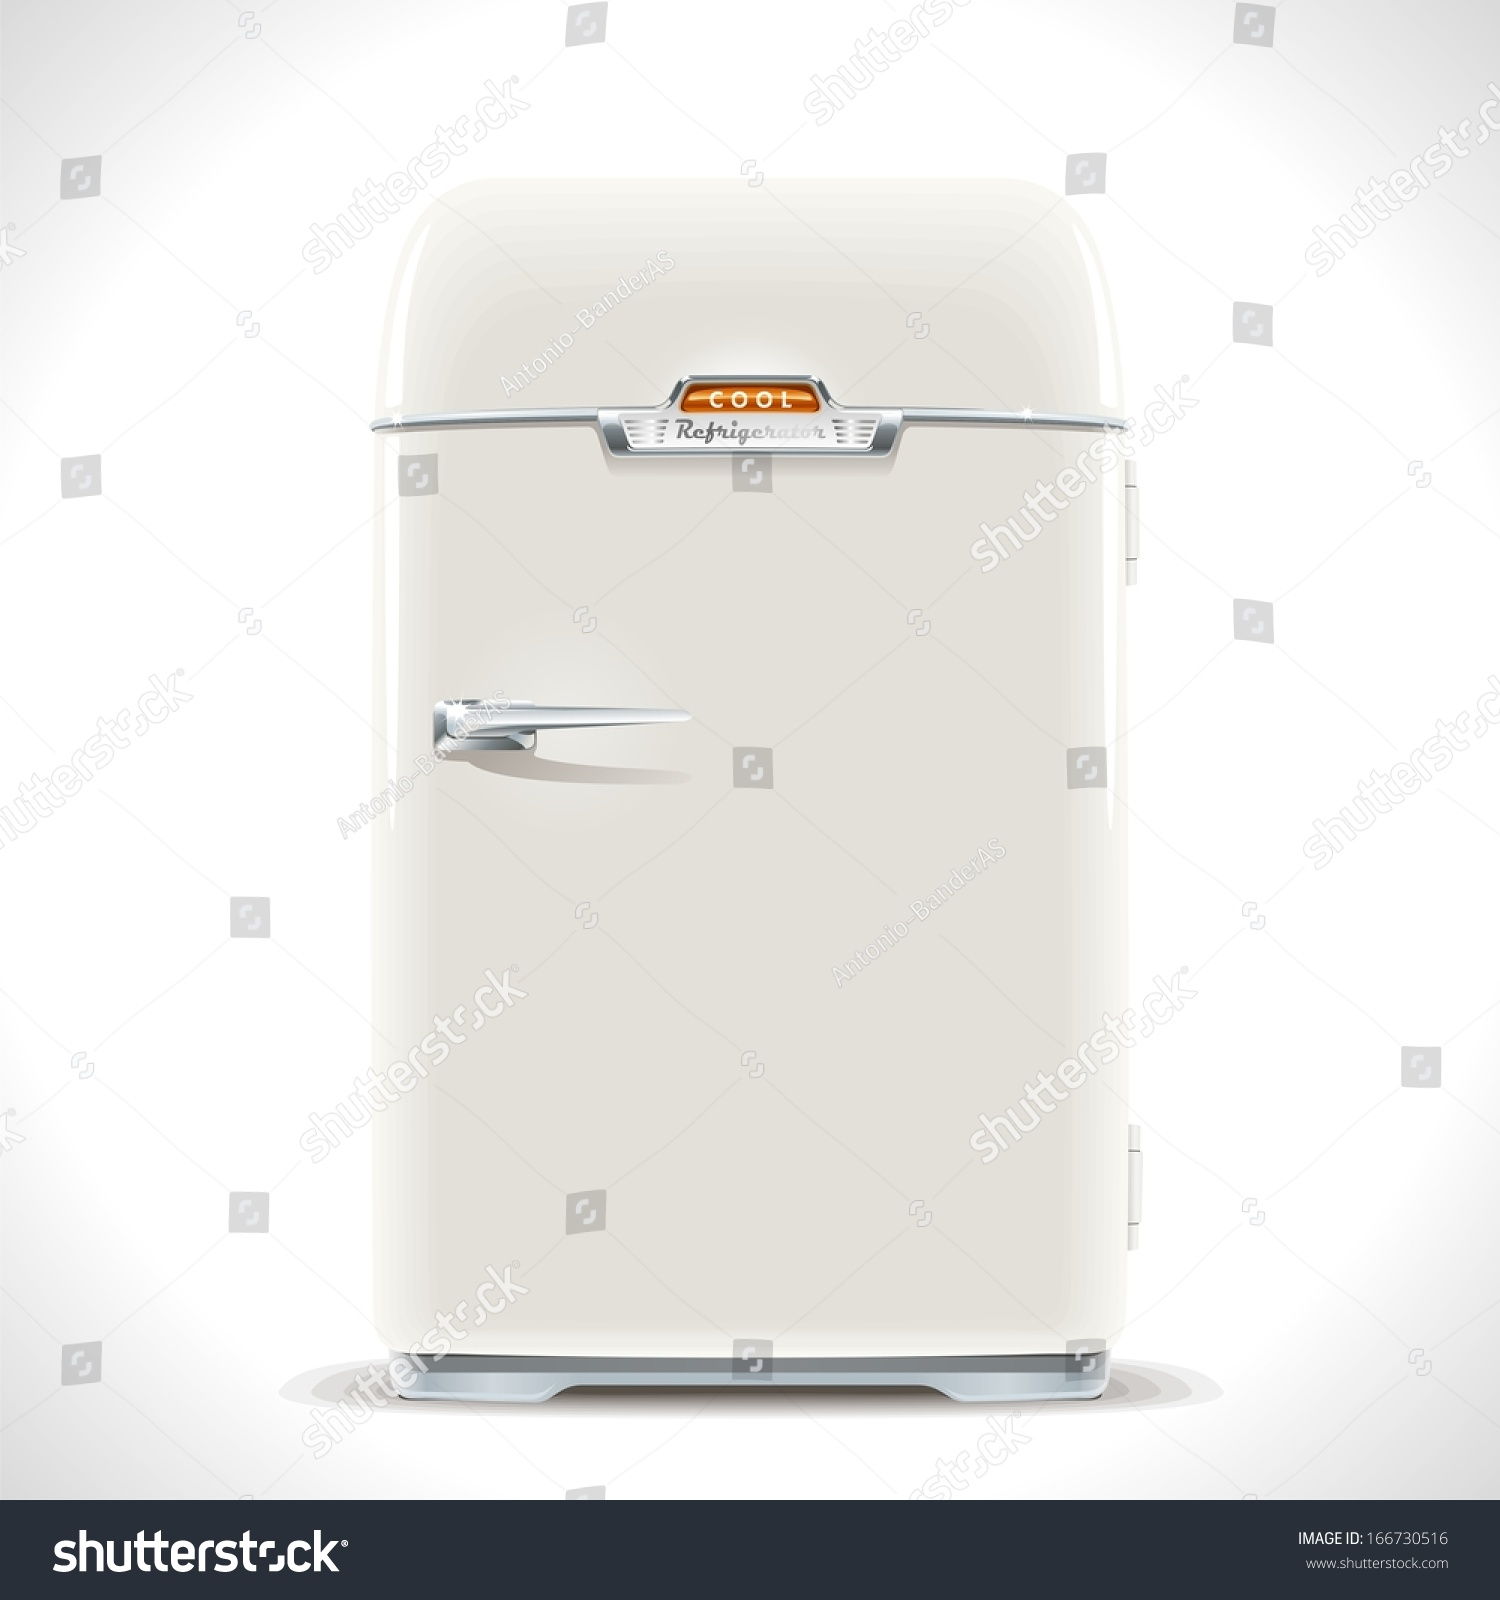 refrigerator vintage. old refrigerator. realistic illustration of an vintage fridge last century with chrome handle. refrigerator